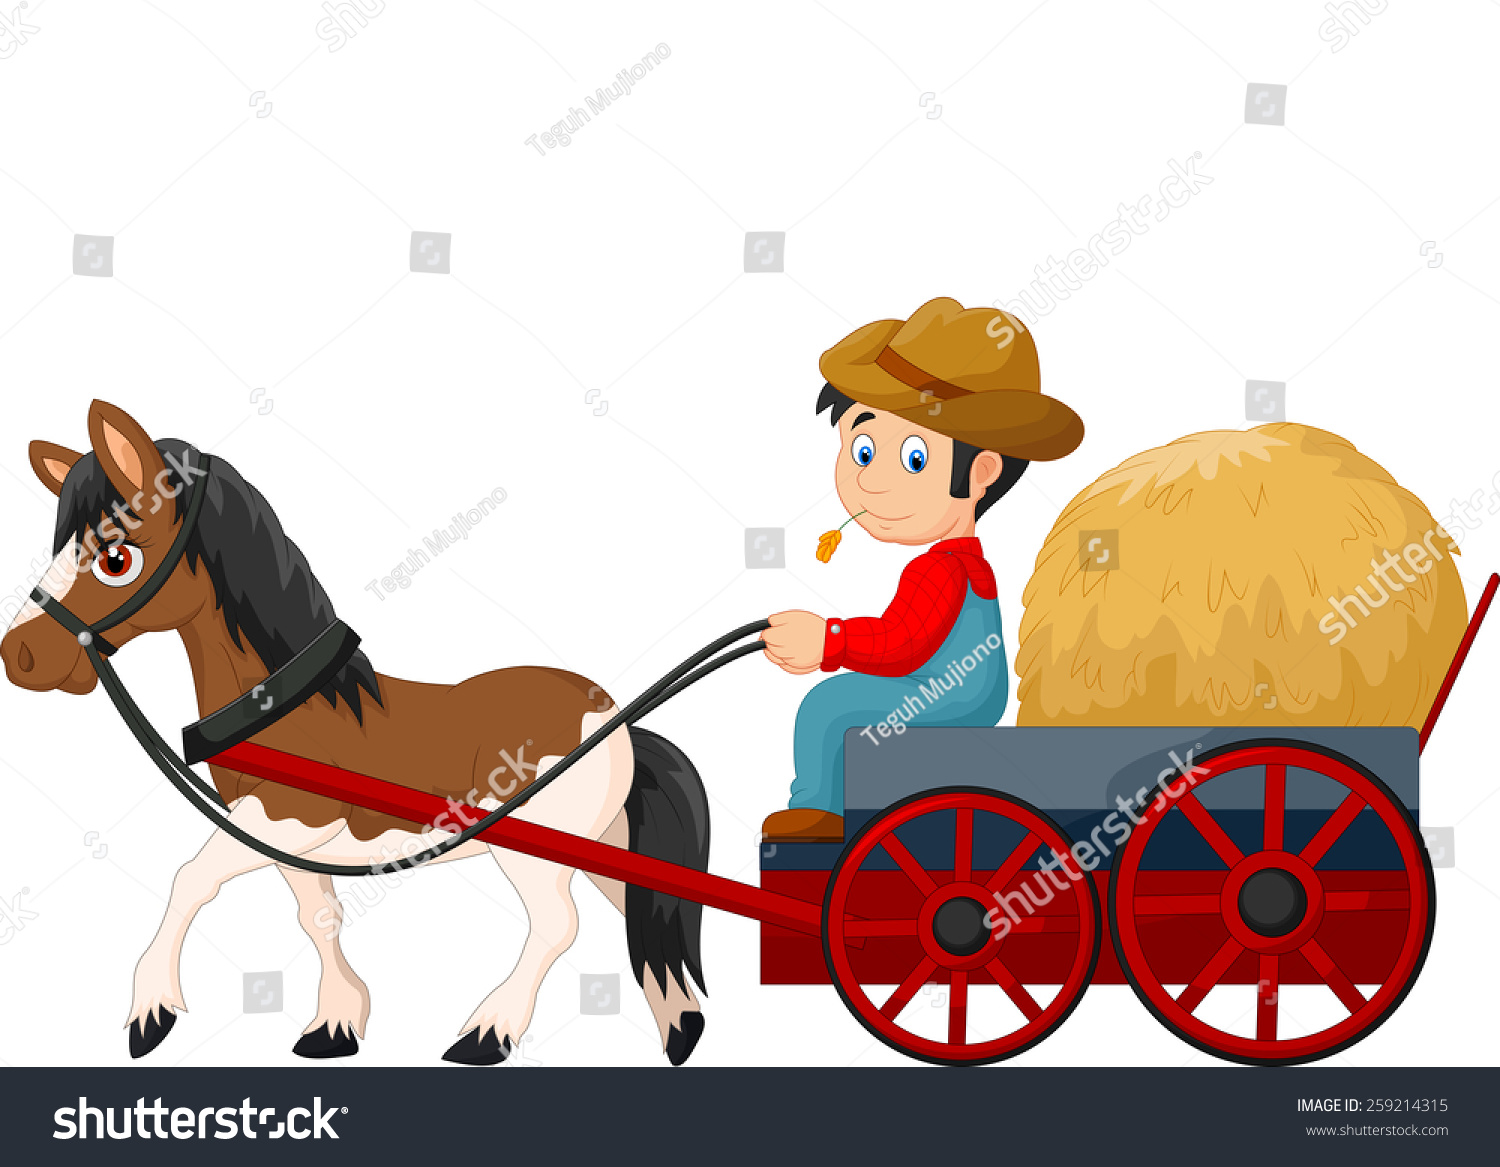 Hay Farmer Tractor Cartoon : Cartoon farmer hay cart stock vector shutterstock